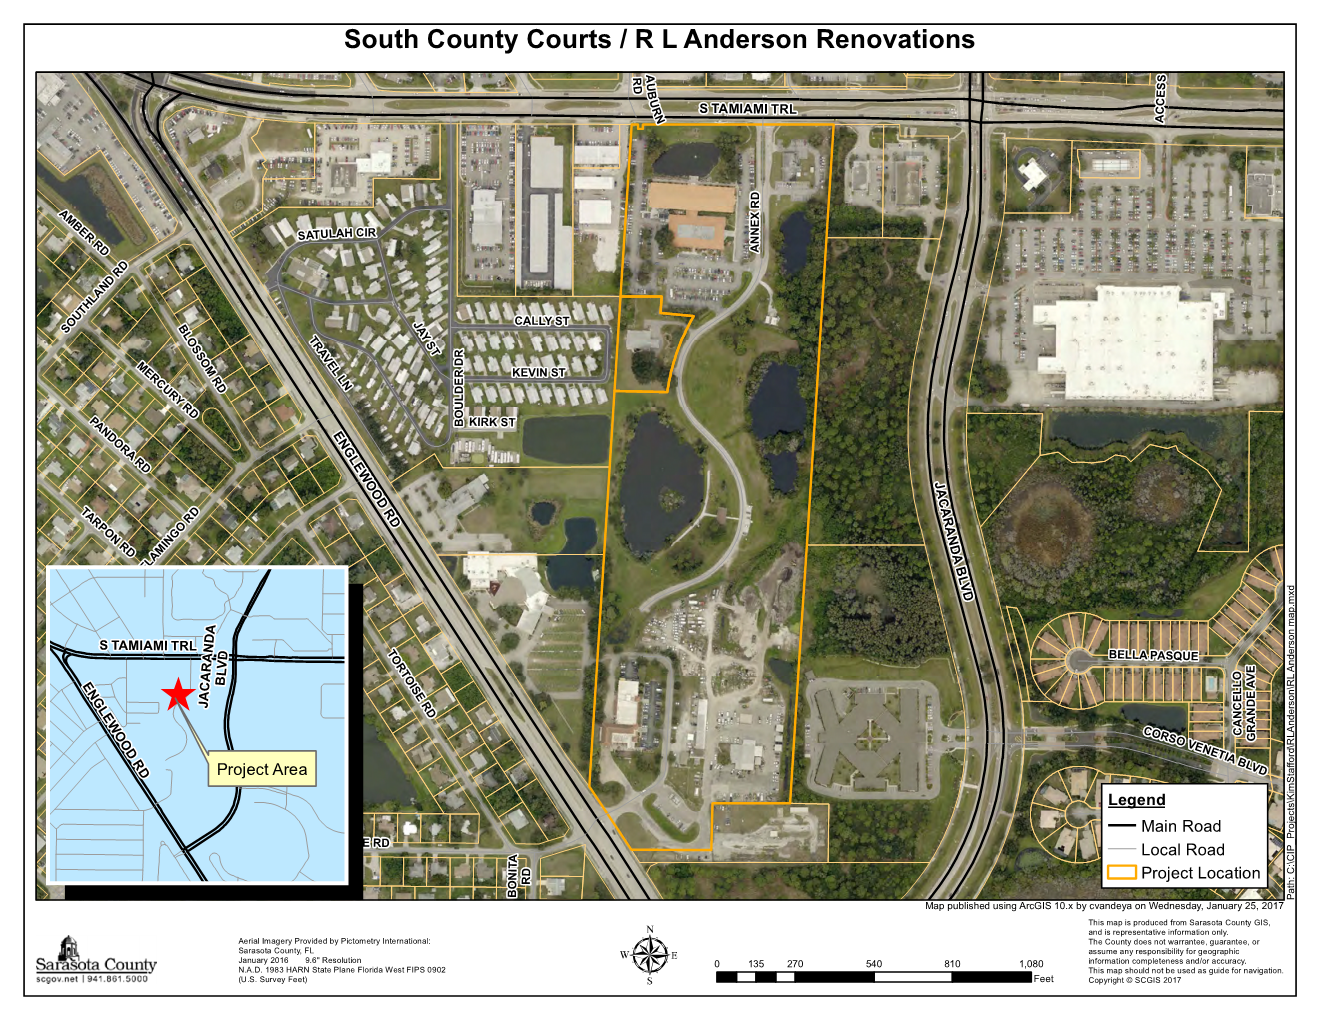 Project Location Map South County Courts-R.L. Anderson building remodel (002)